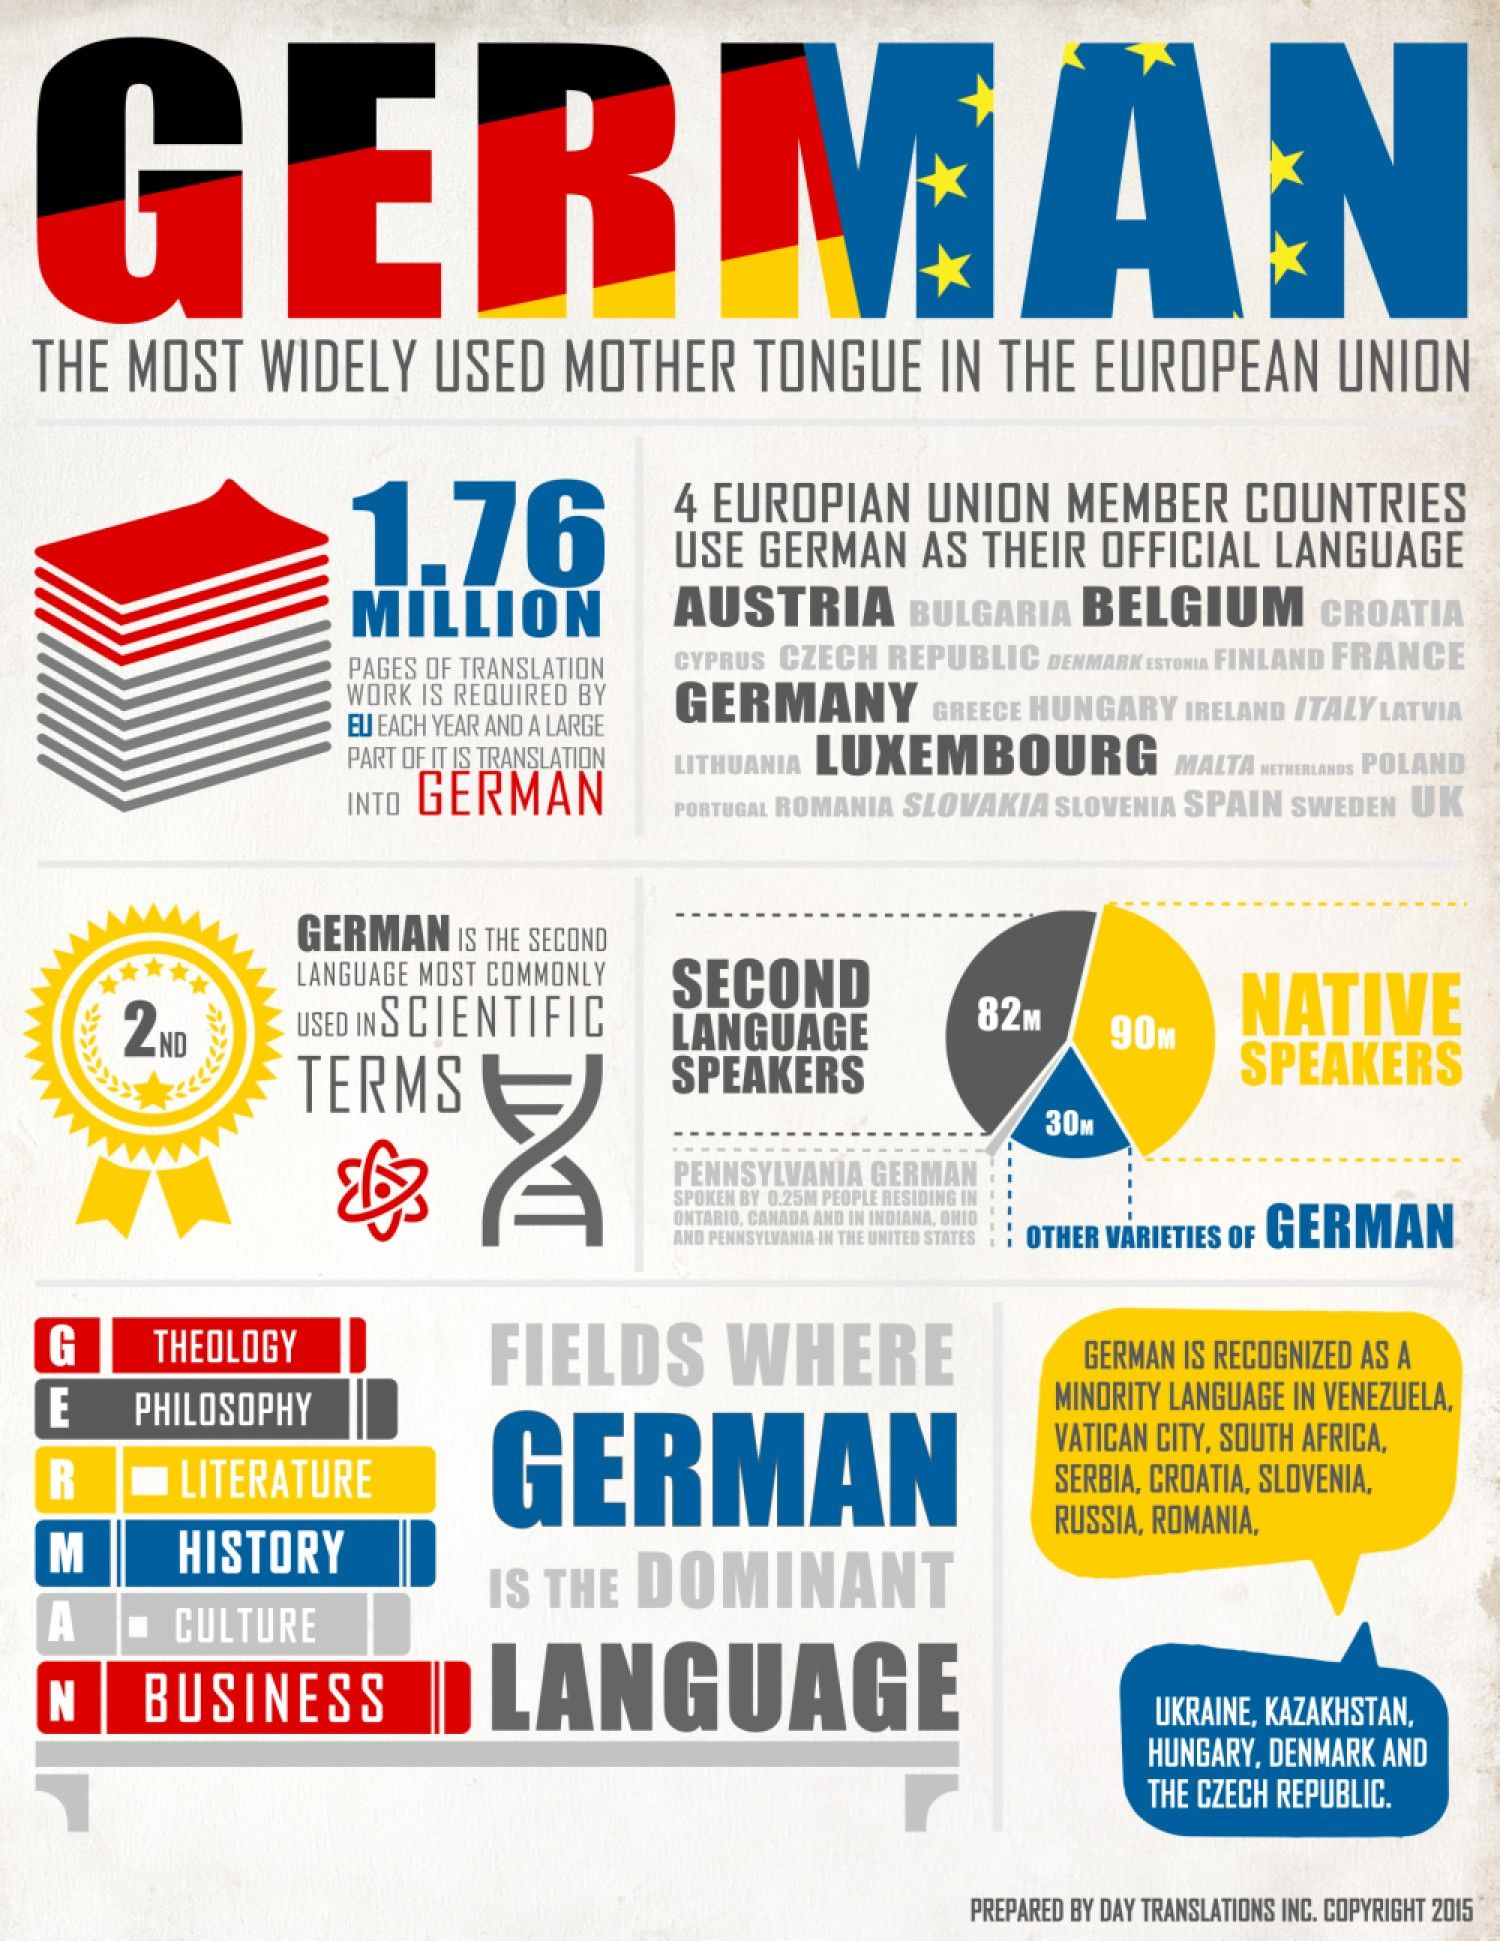 german language facts and statistics world language guide infographic tools for school. Black Bedroom Furniture Sets. Home Design Ideas